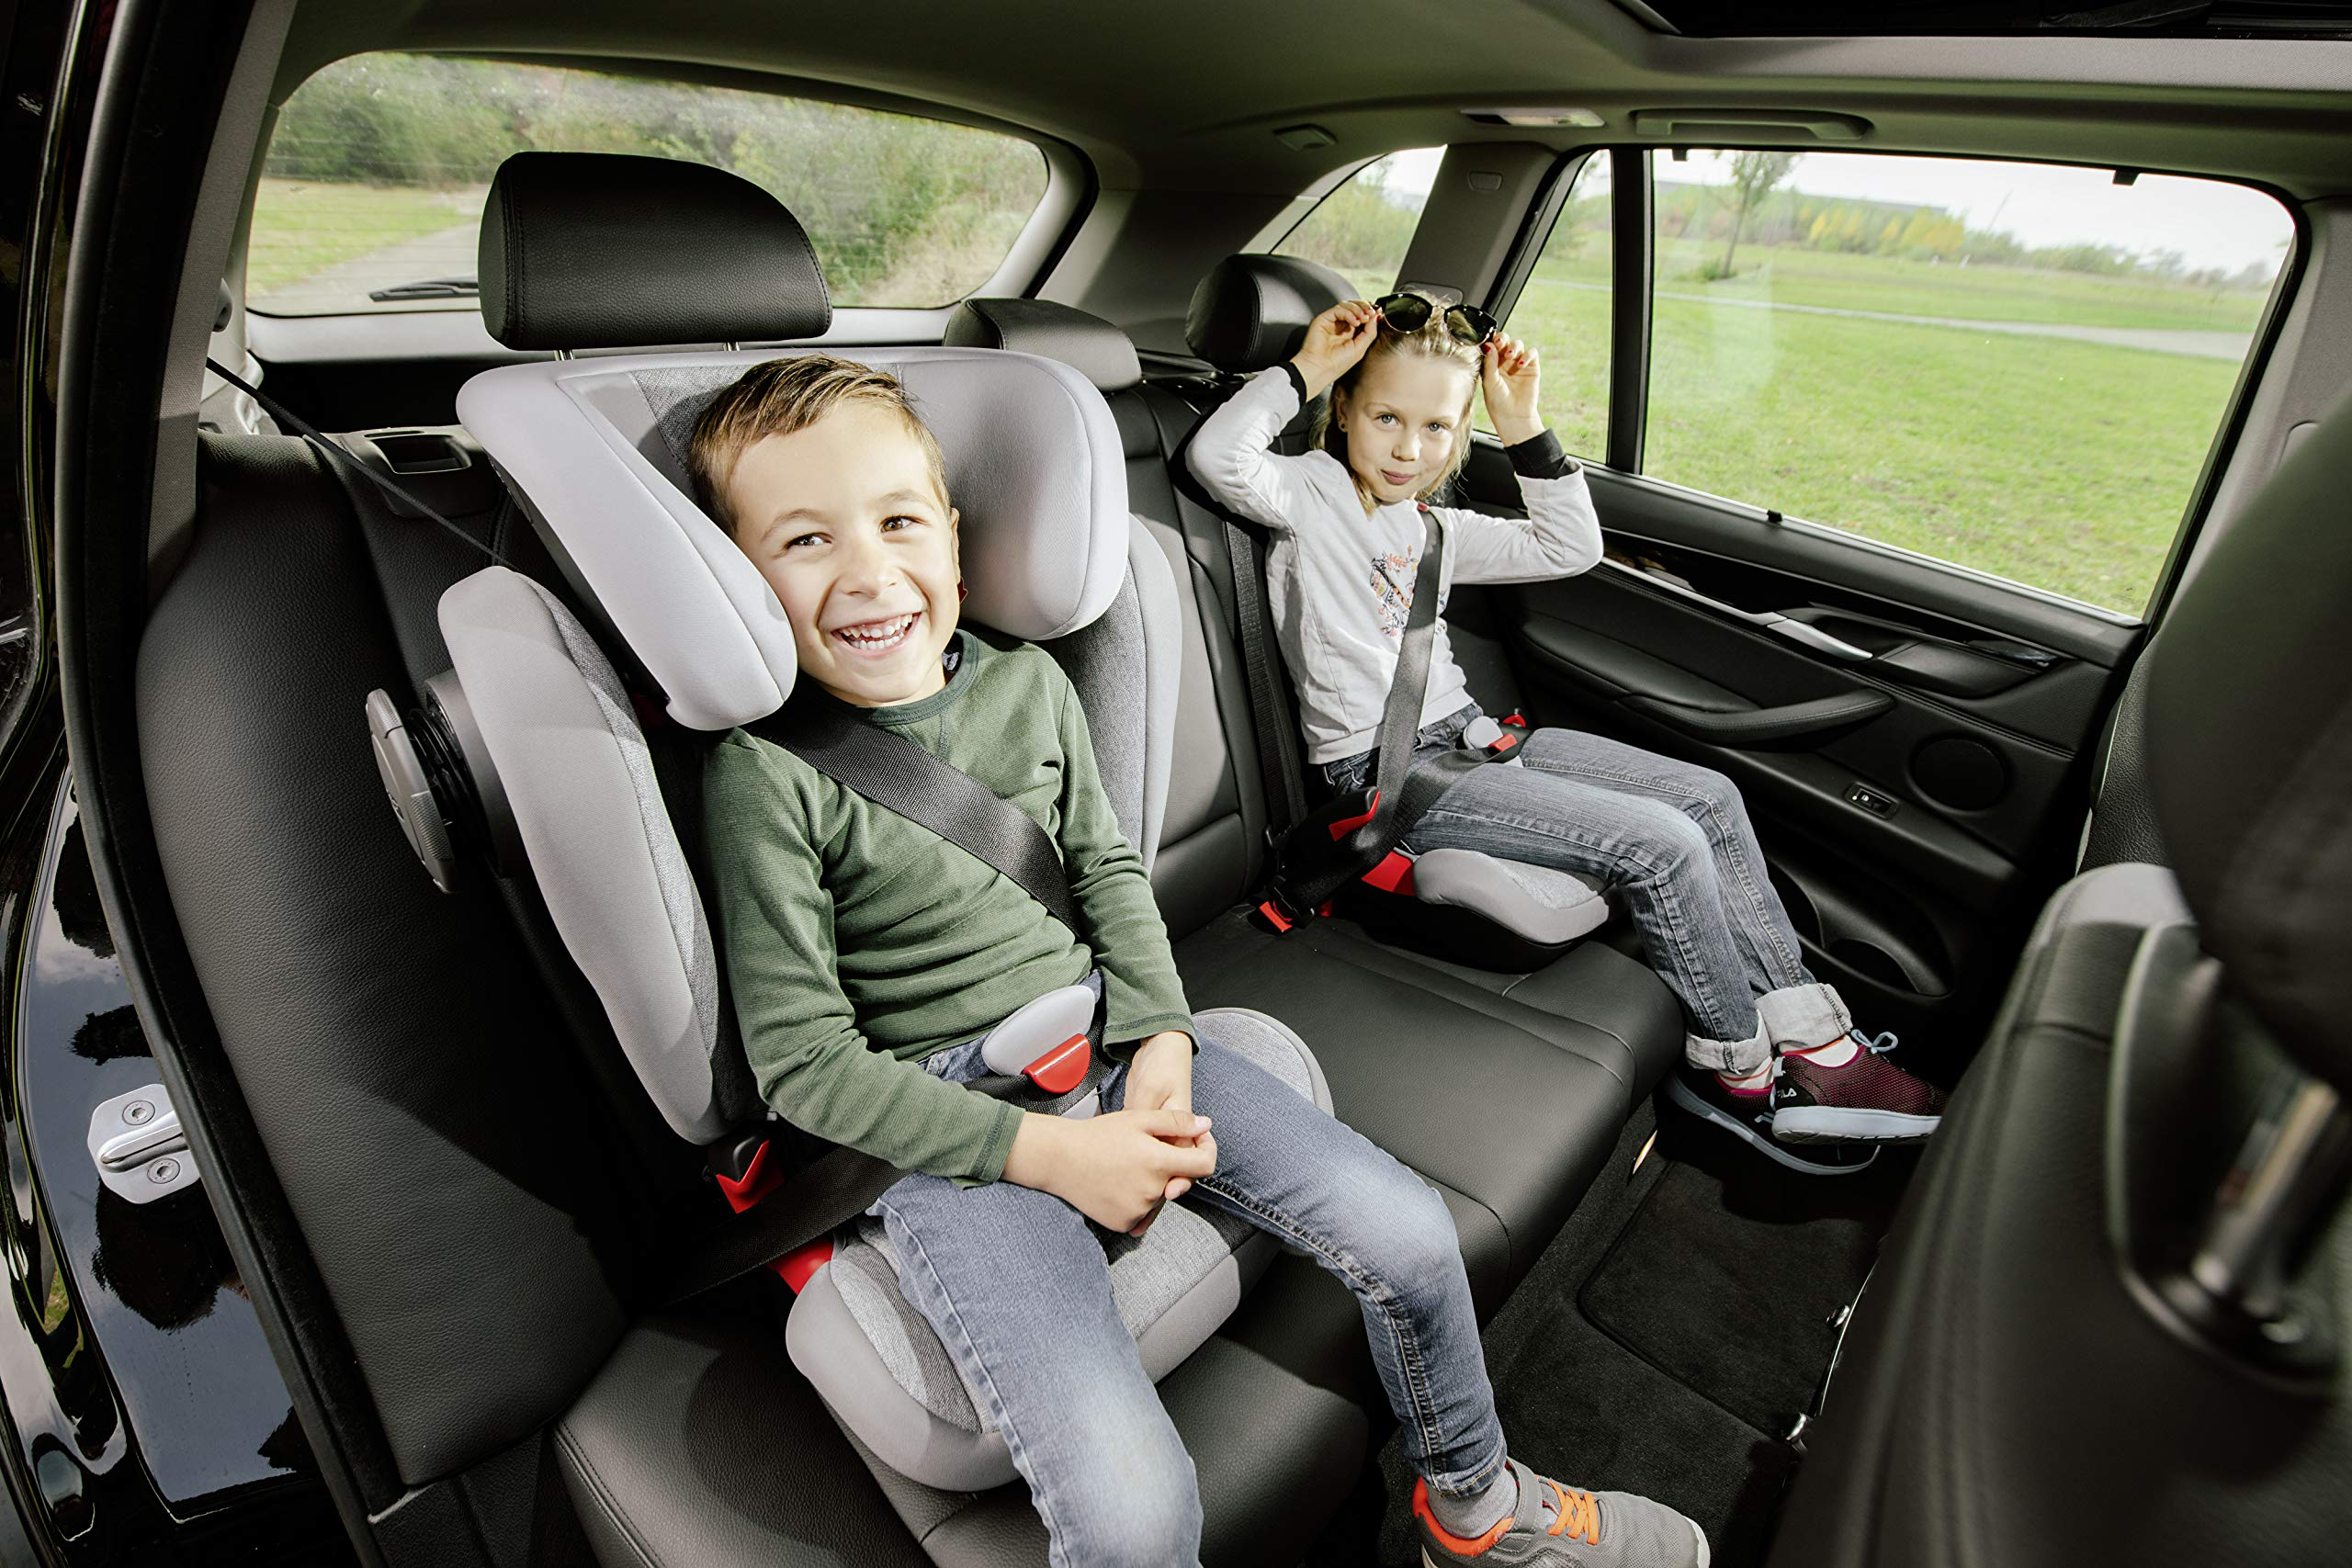 Britax Römer KIDFIX² S Group 2-3 (15-36kg) Car Seat - Grey Marble  Advanced side impact protection - sict offers superior protection to your child in the event of a side collision. reducing impact forces by minimising the distance between the car and the car seat. Secure guard - helps to protect your child's delicate abdominal area by adding an extra - a 4th - contact point to the 3-point seat belt. High back booster - protects your child in 3 ways: provides head to hip protection; belt guides provide correct positioning of the seat belt and the padded headrest provides safety and comfort. 10